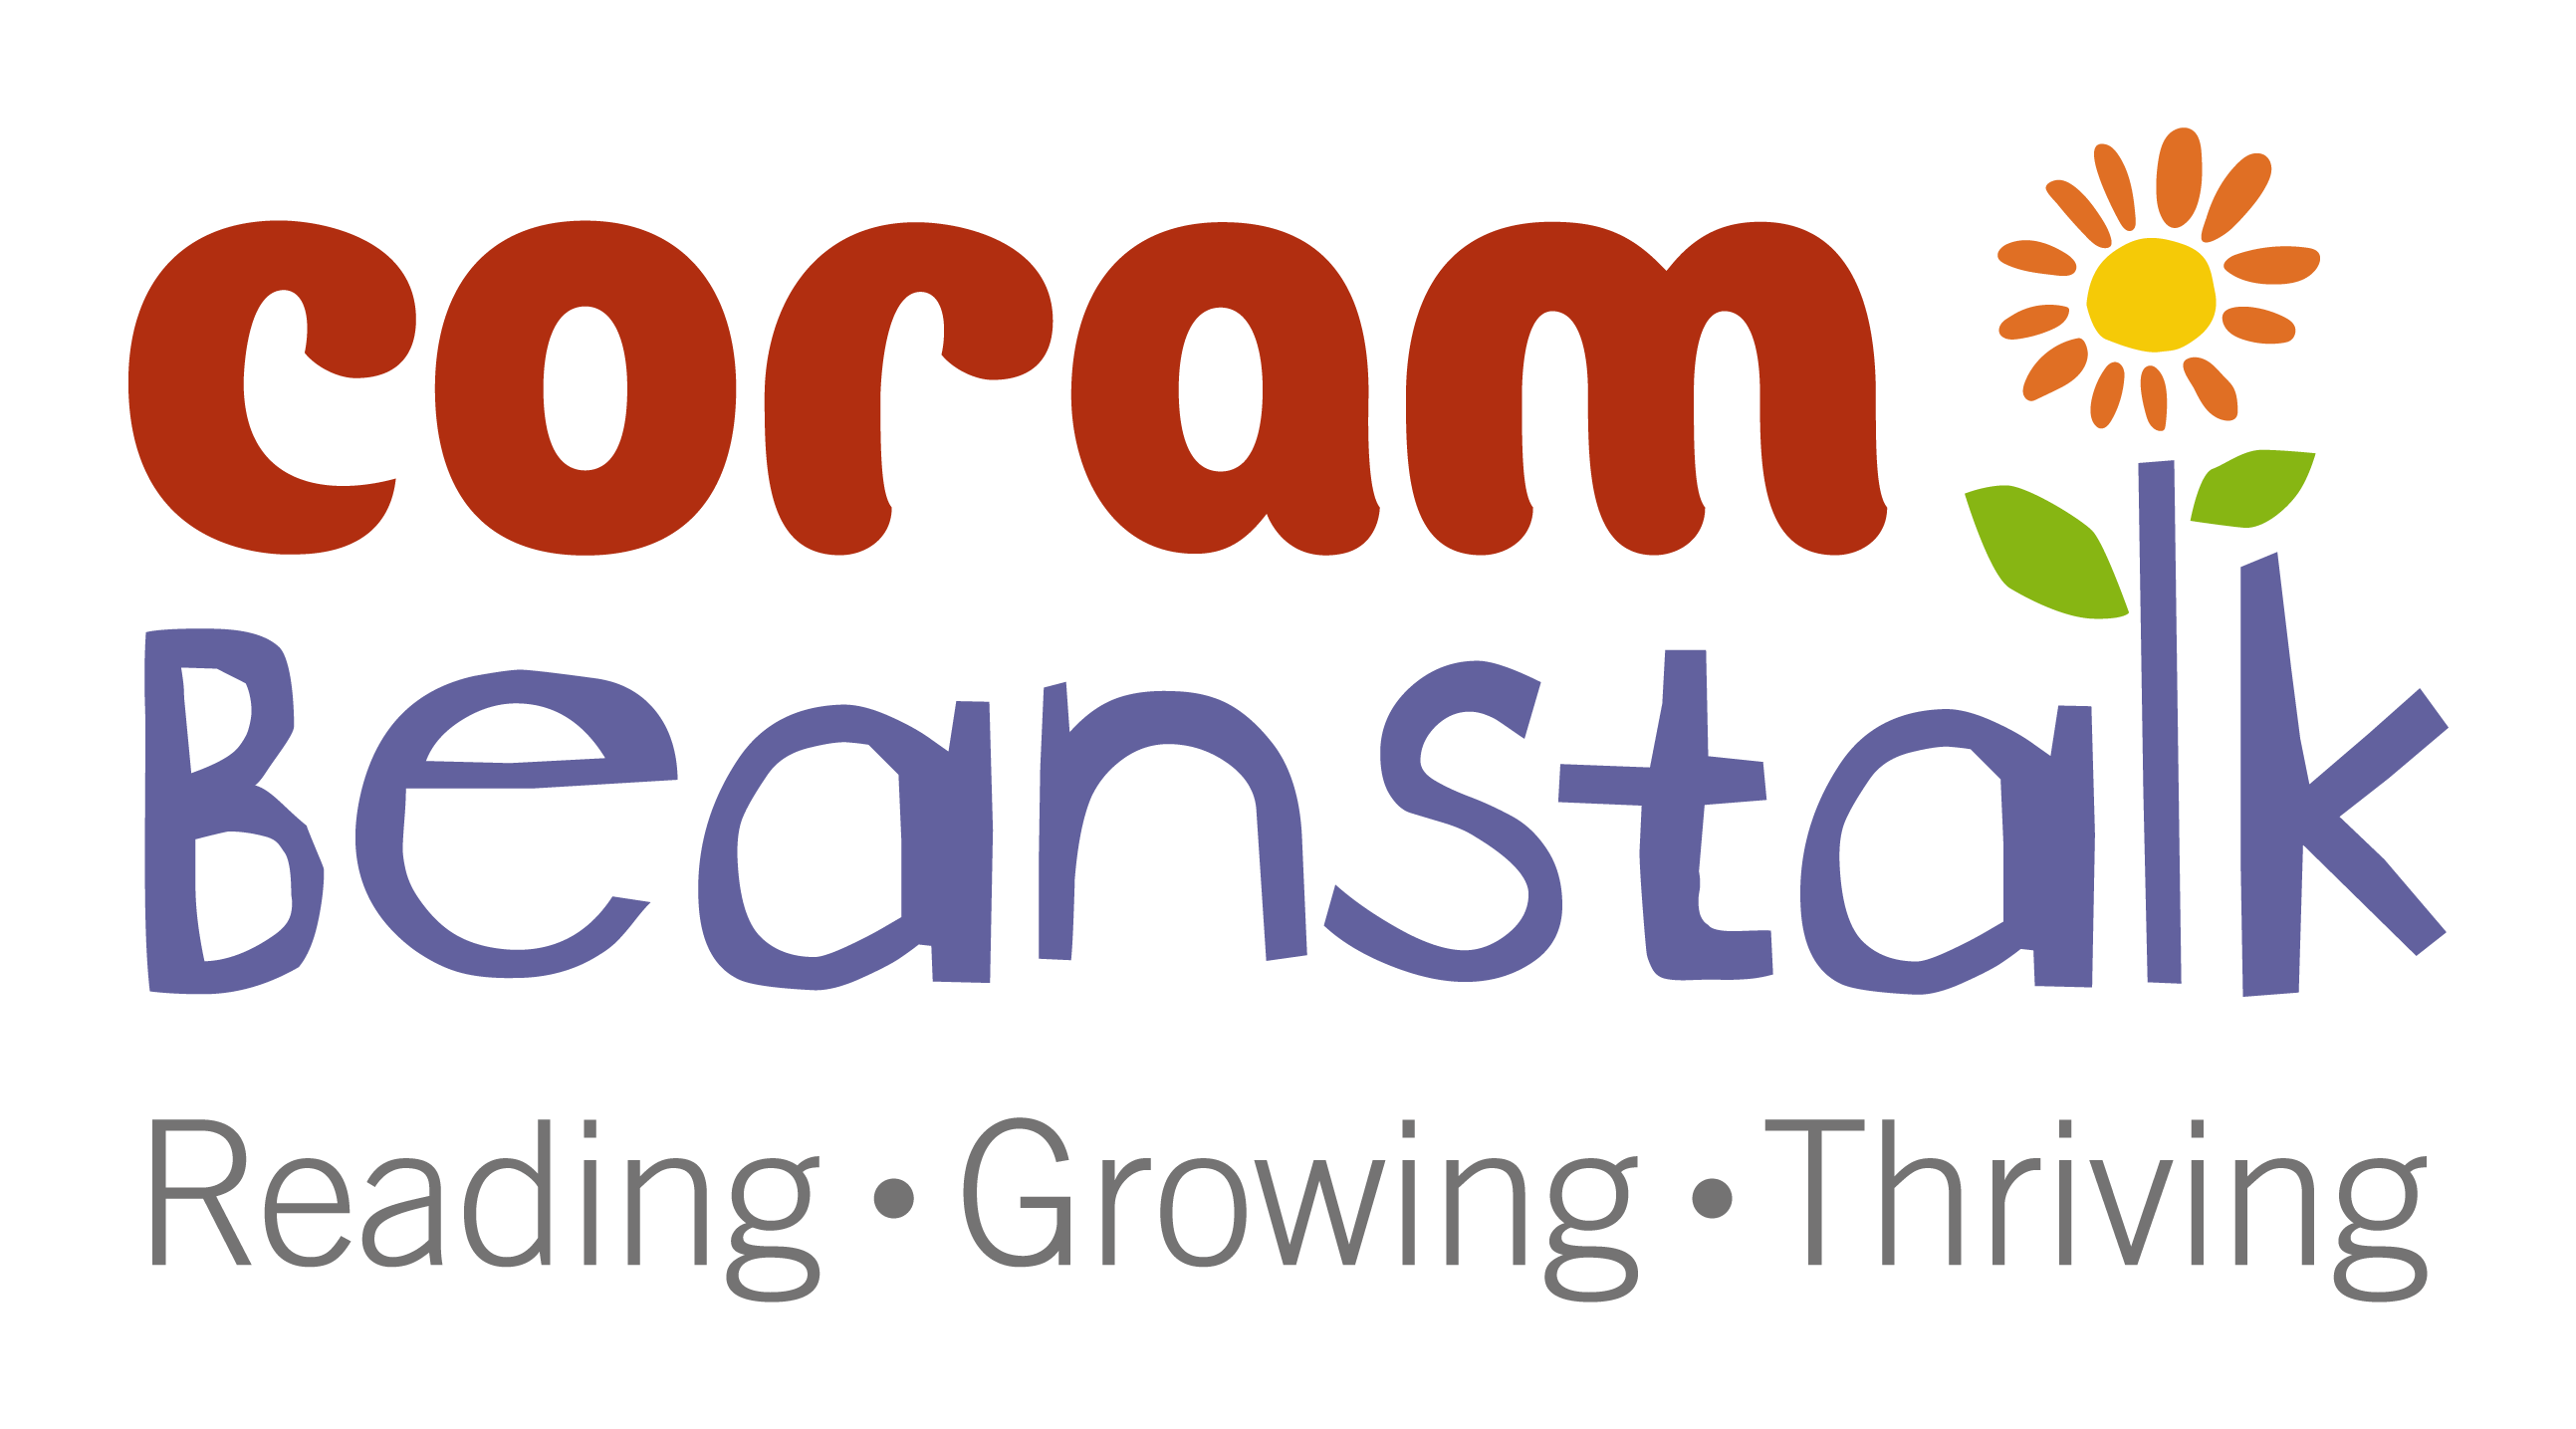 Coram Beanstalk Reading Growing Thriving